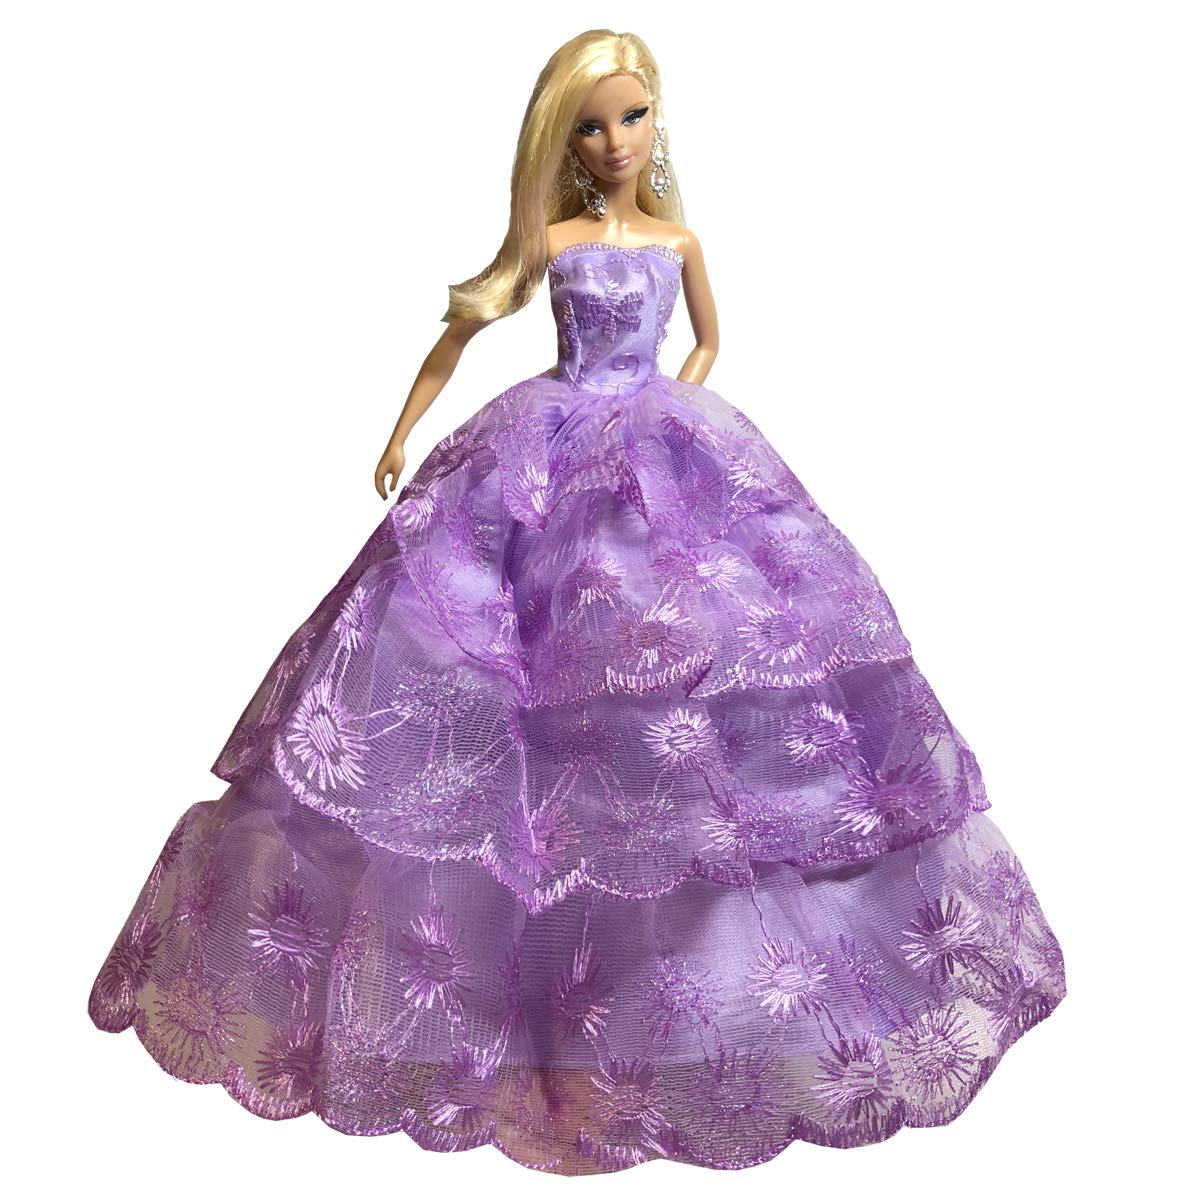 Peregrine Ice Purple Lace Layered Ruffle Gown Dress for 11.5 inches Dolls /& Other 30 cm